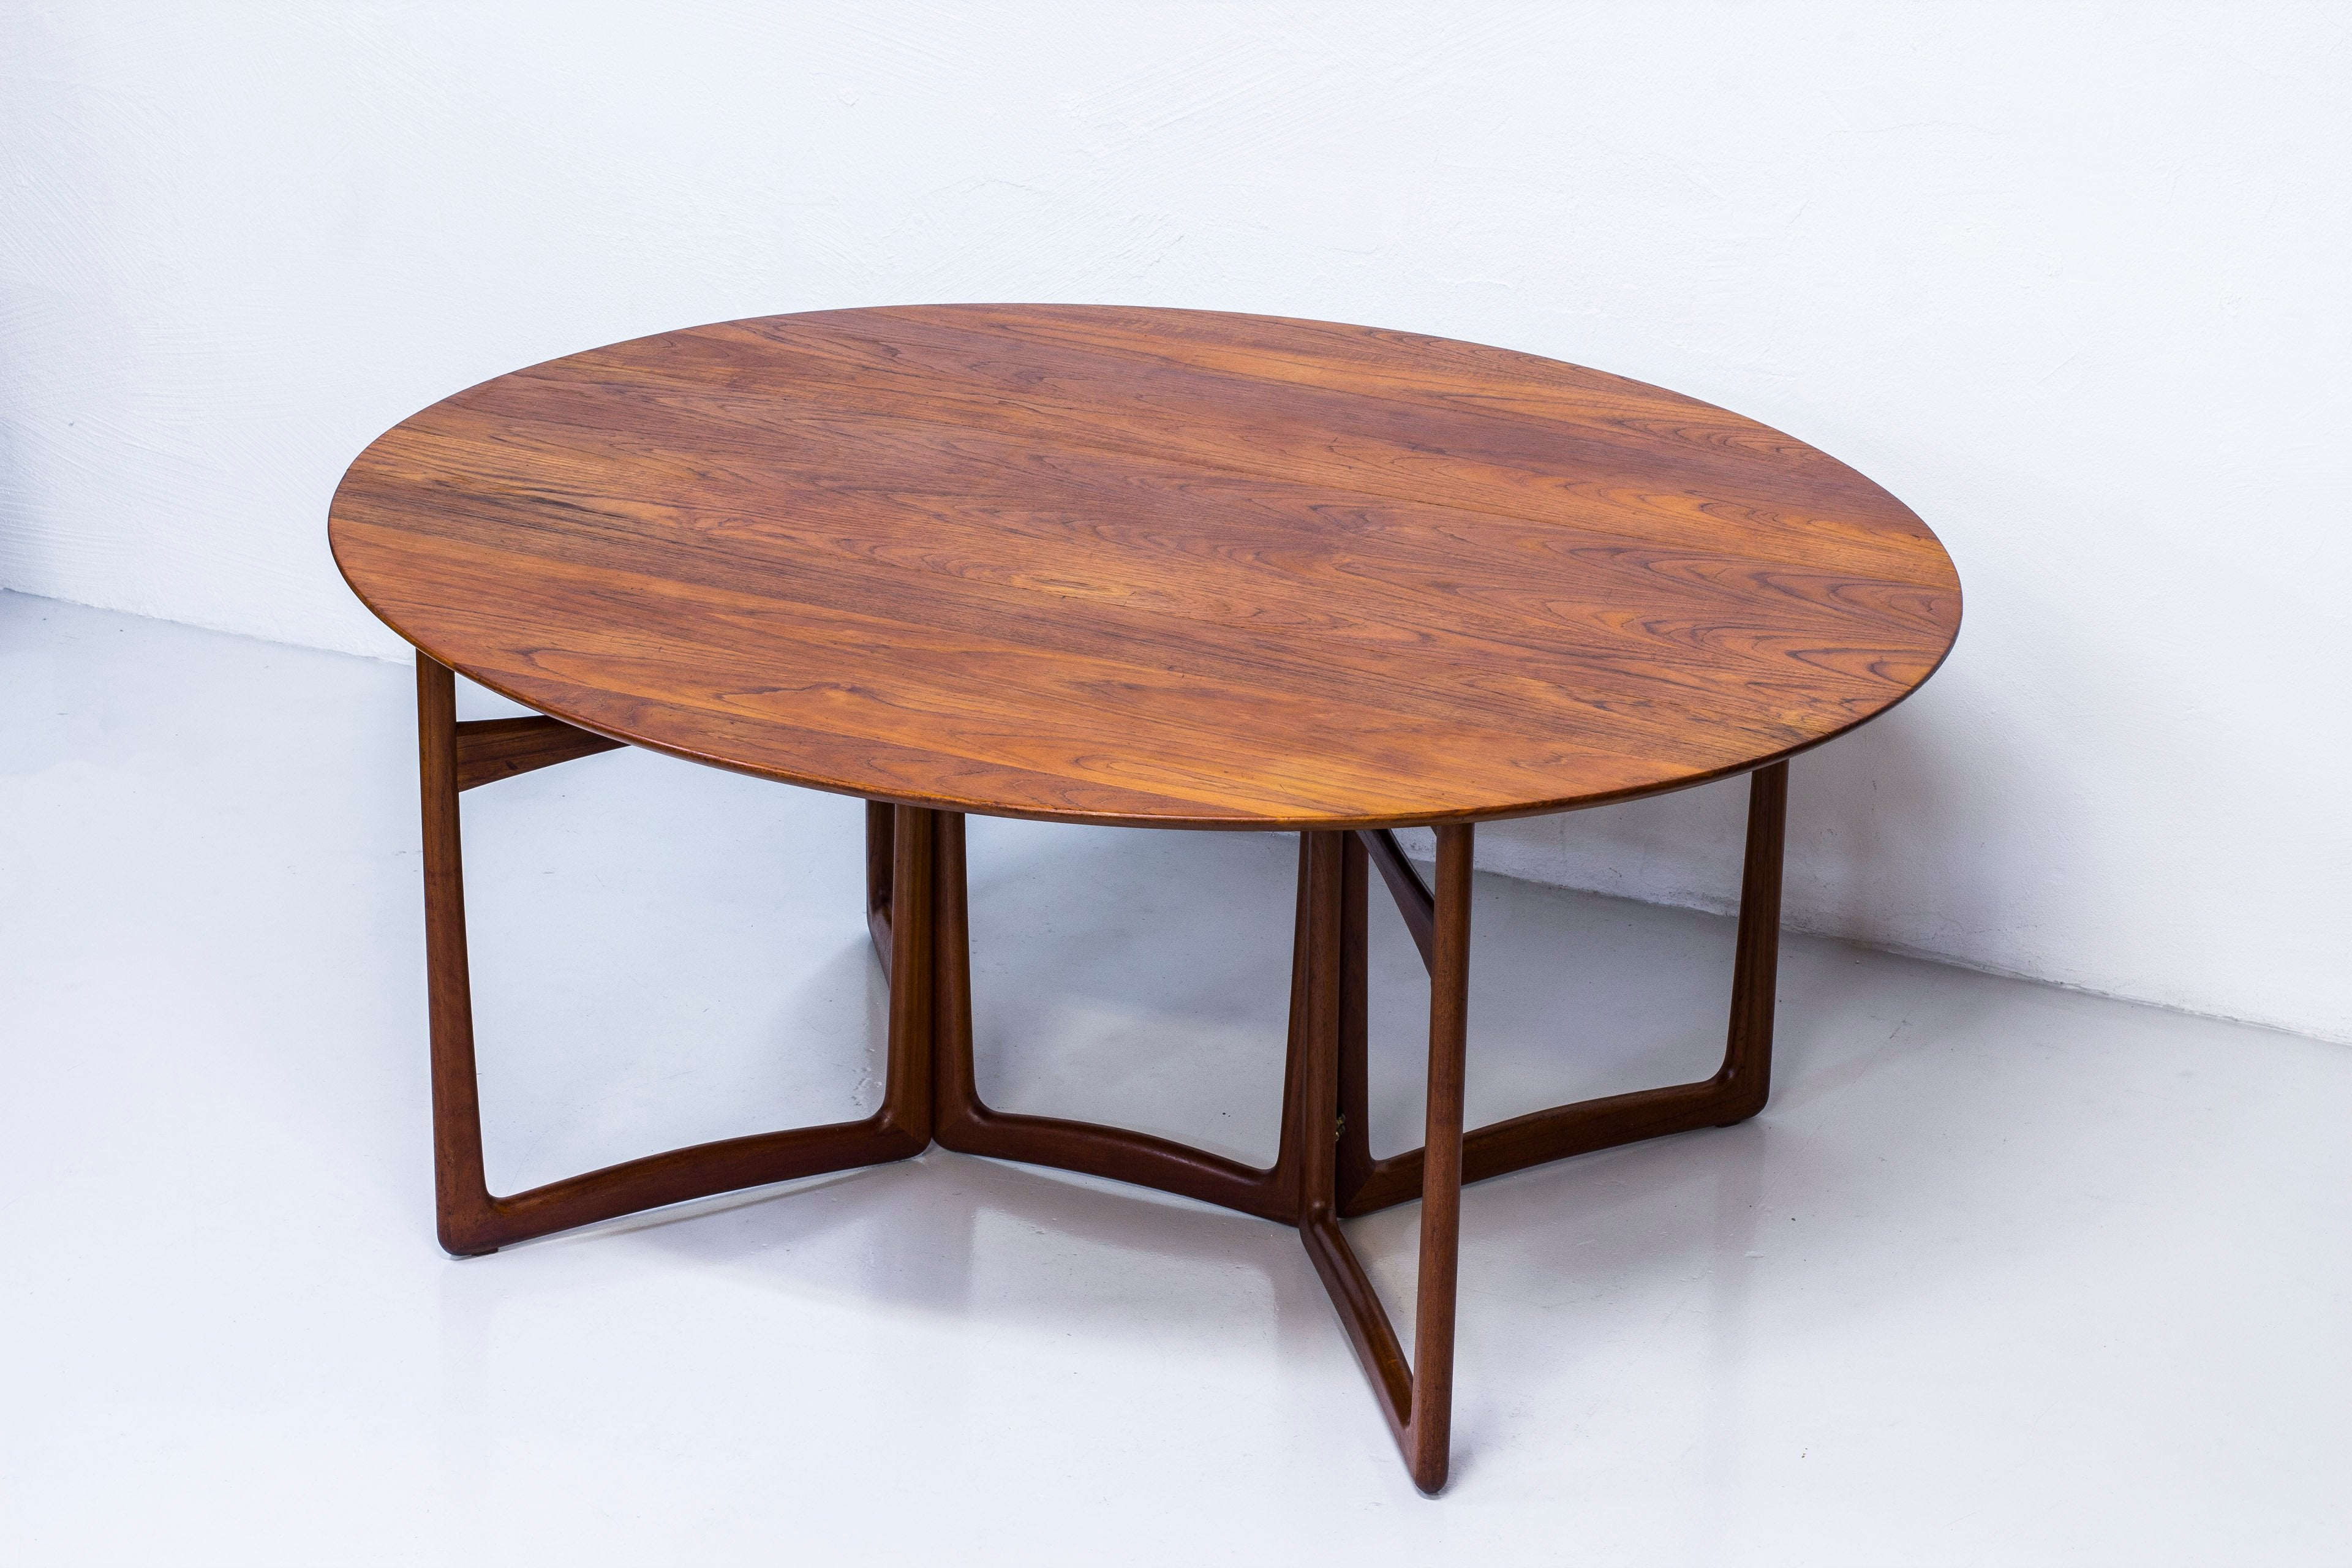 Drop leaf dining table by Hvidt & Mølgaard